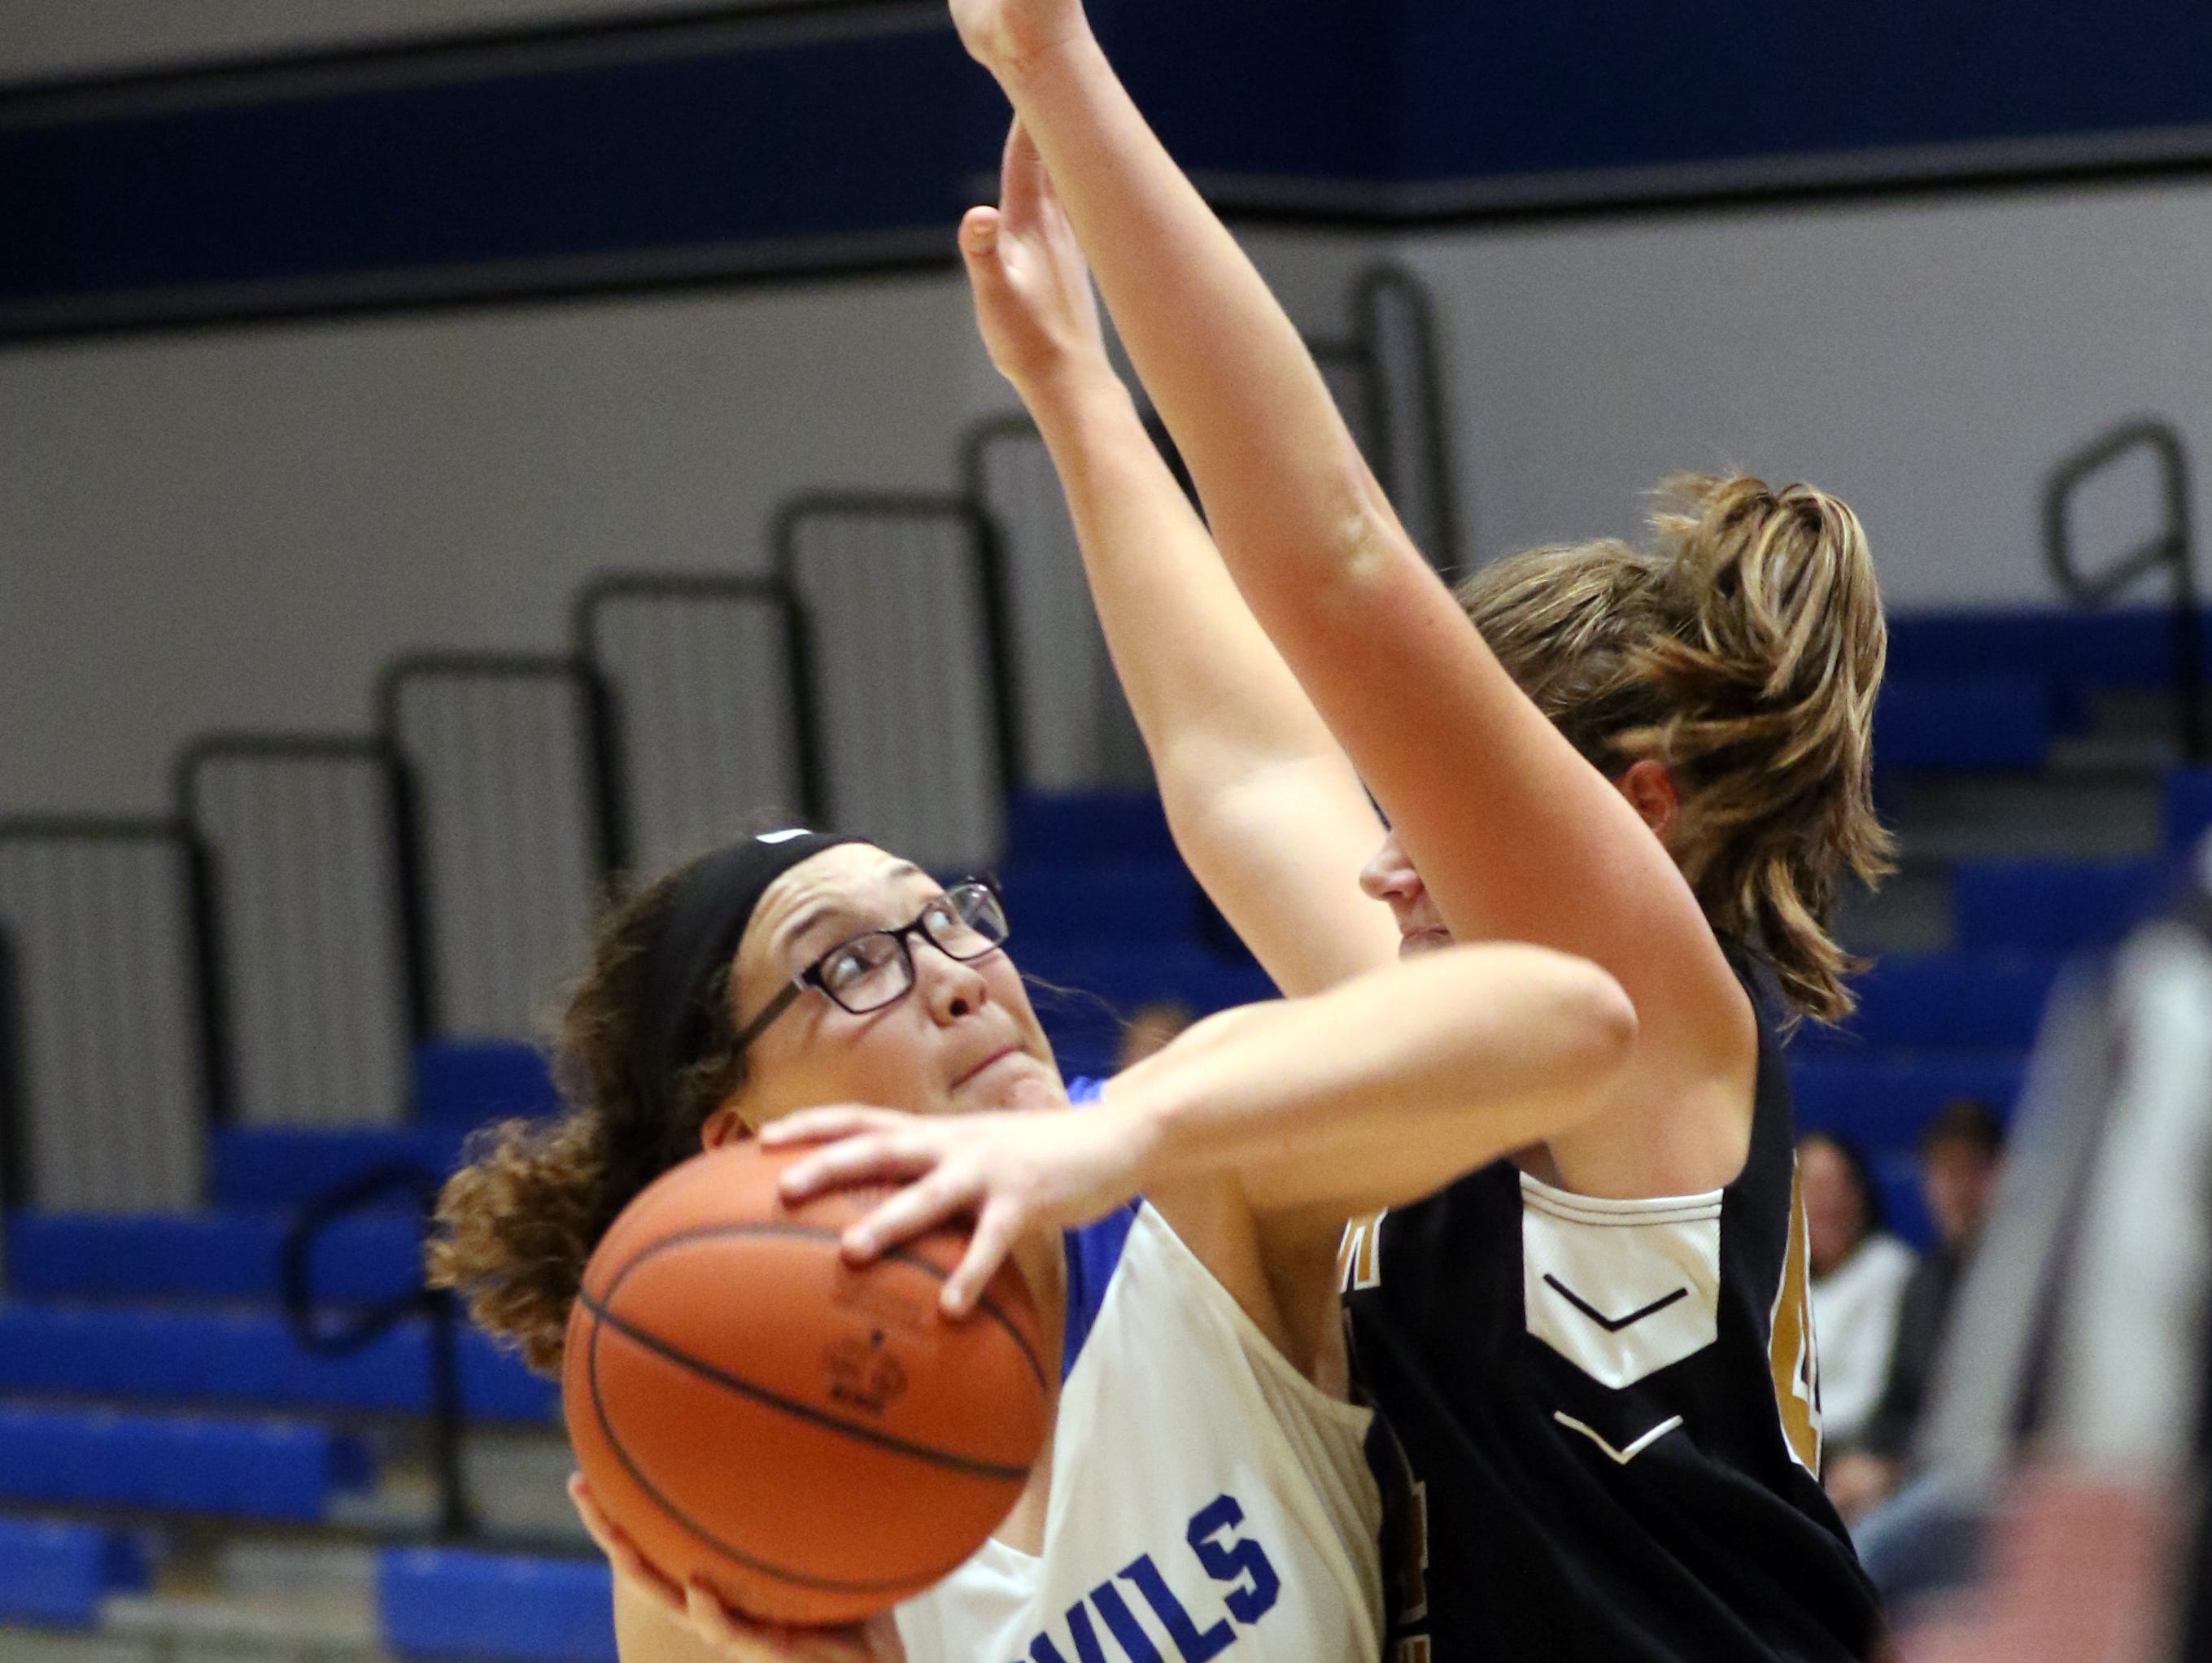 Zanesville's Alena Mayle drives to the hoop against River View.